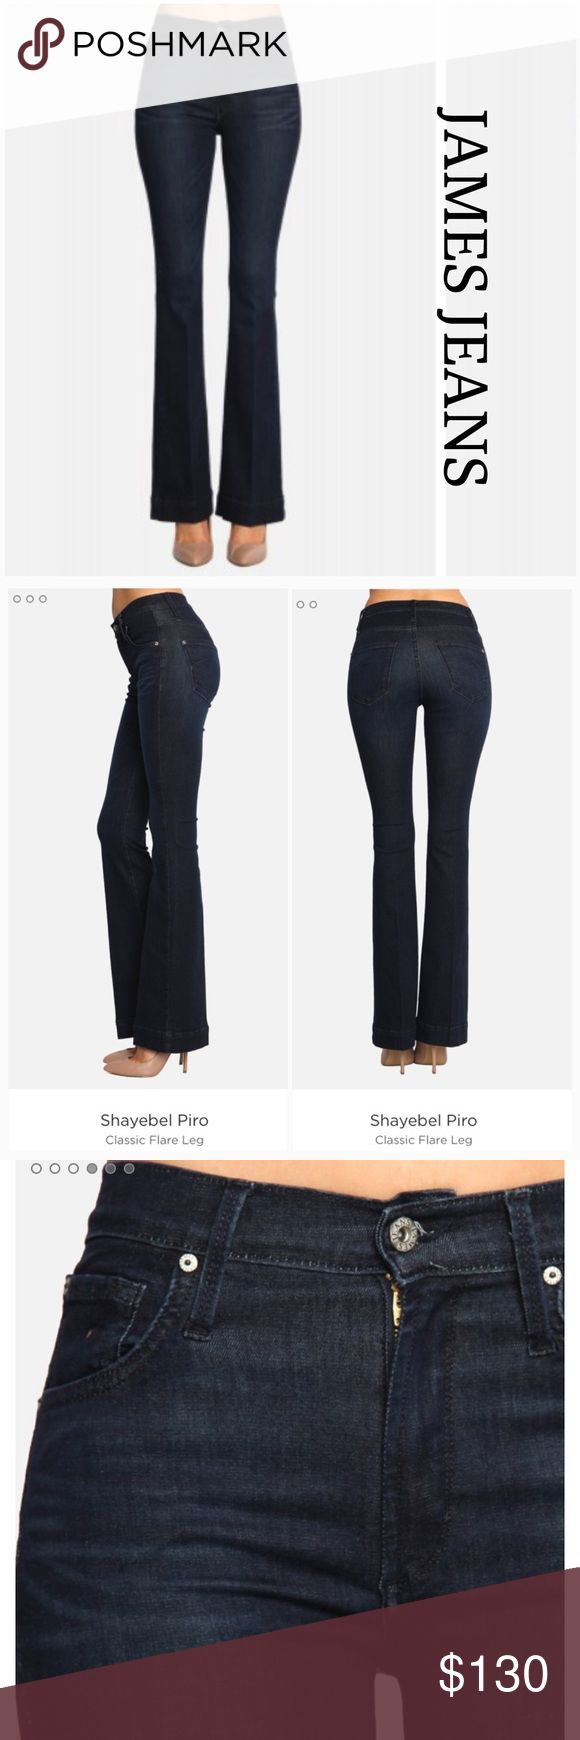 """James Jeans Shayebel Prio Classic Flare Leg BasicallyNew, Only worn once, they are too long for me. Very soft and stretchable, like not wearing jeans at all. Inseam 33"""" , waist lying flat 15 3/4"""" plus a lot of stretch. They are Size 31 which joes shows as a 14 converted but they are more like a 12. Large cuff band James Jeans Jeans Flare & Wide Leg"""